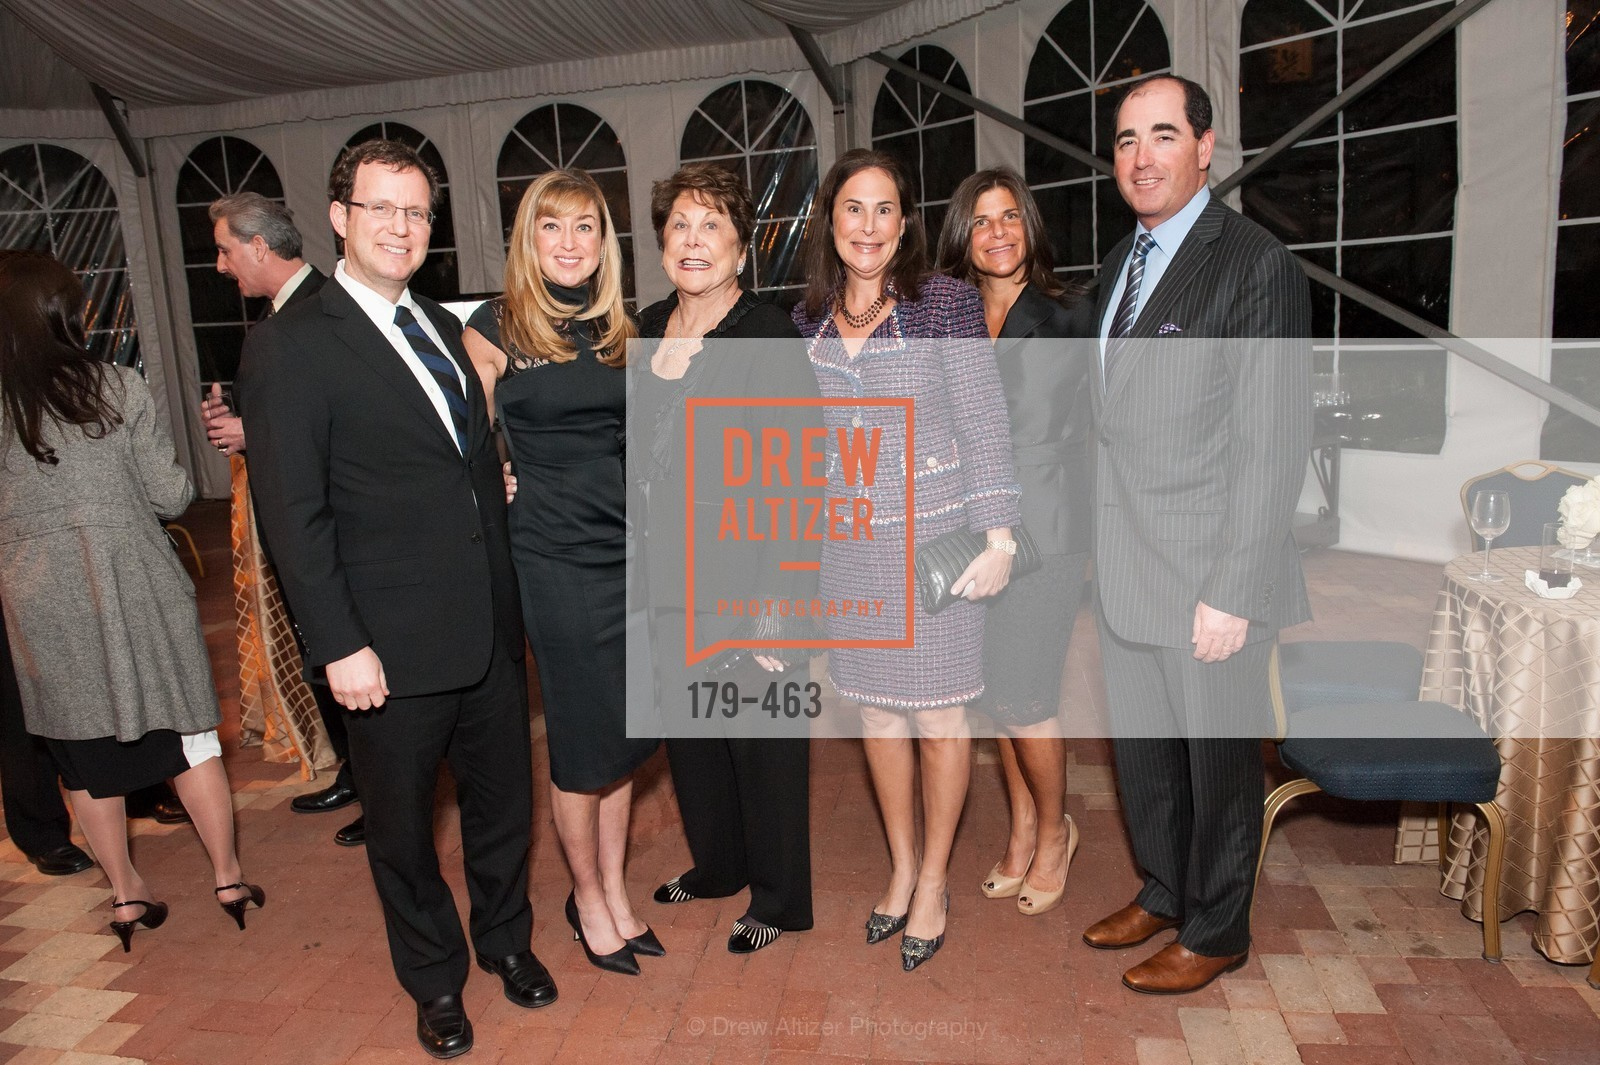 Andy Barish, Kathy Barish, Joelle Benioff, Julie Young, Mary Rockman, David Rockman, UCSF Nina Ireland Program for Lung Health Dinner, US. The Terrace Room, The Ritz-Carlton Hotel, January 15th, 2014,Drew Altizer, Drew Altizer Photography, full-service agency, private events, San Francisco photographer, photographer california